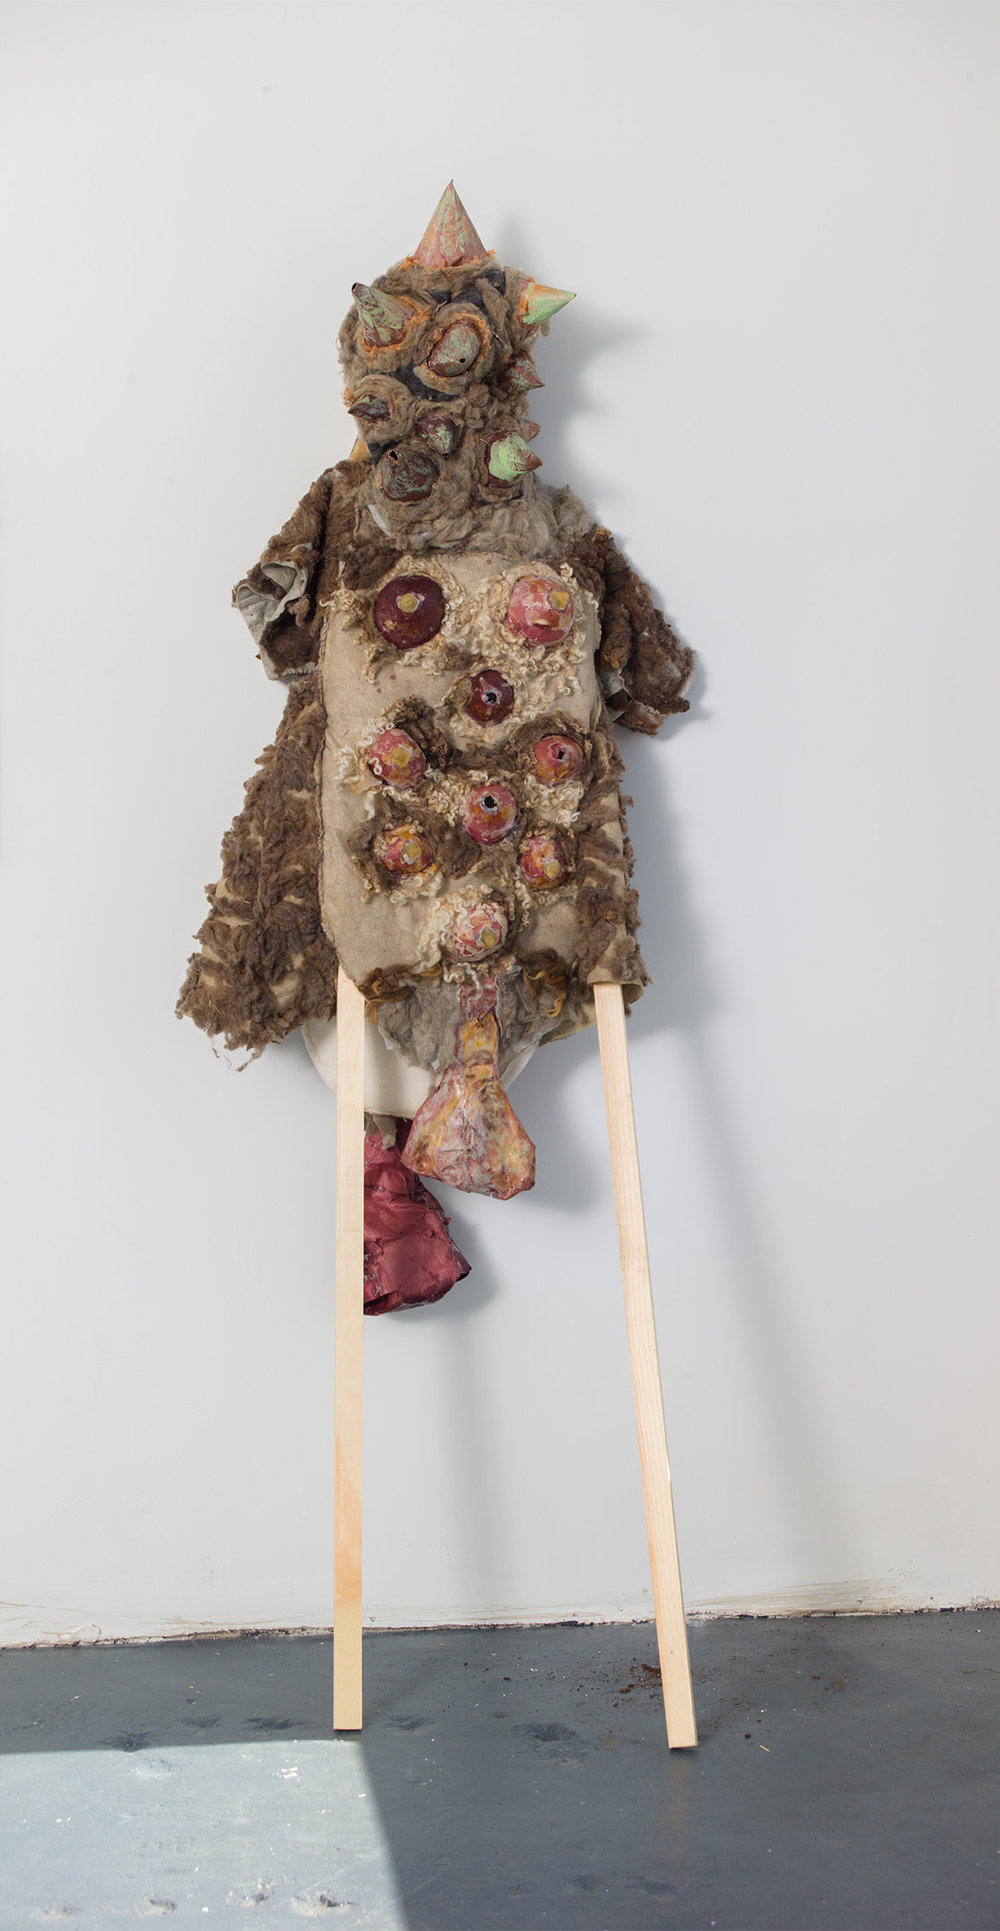 SN Taxidermy I , 2016–2017, papier-mâché, latex, raw wool, felt, burlap, batting, wax, wooden legs, overall: 84 x 28 x 7 in/213.36 x 71.12 x 17.78 cm